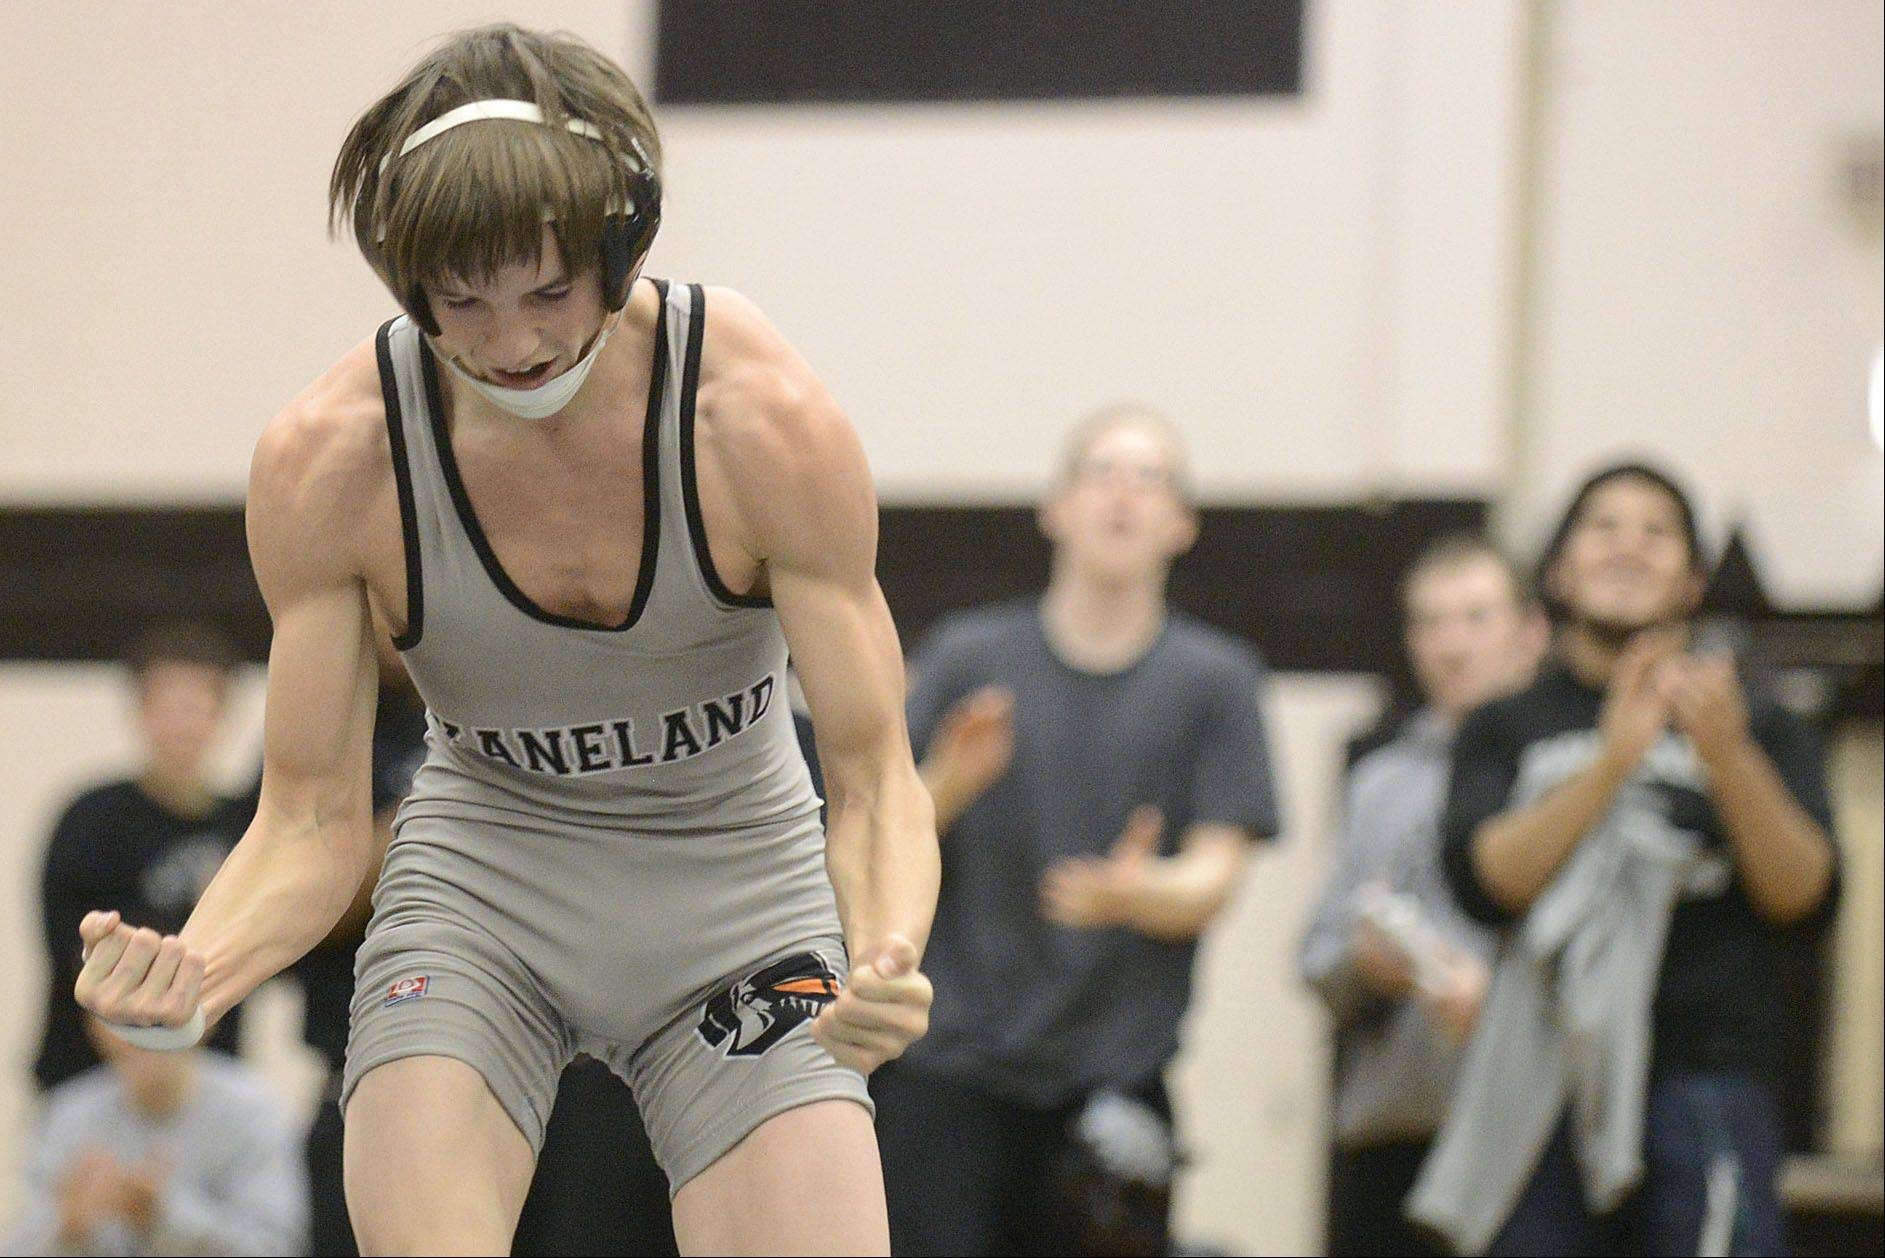 Kaneland's Nick Mish celebrates his win over DeKalb's Alex Irick in the 106 pound match on Thursday, December 12.